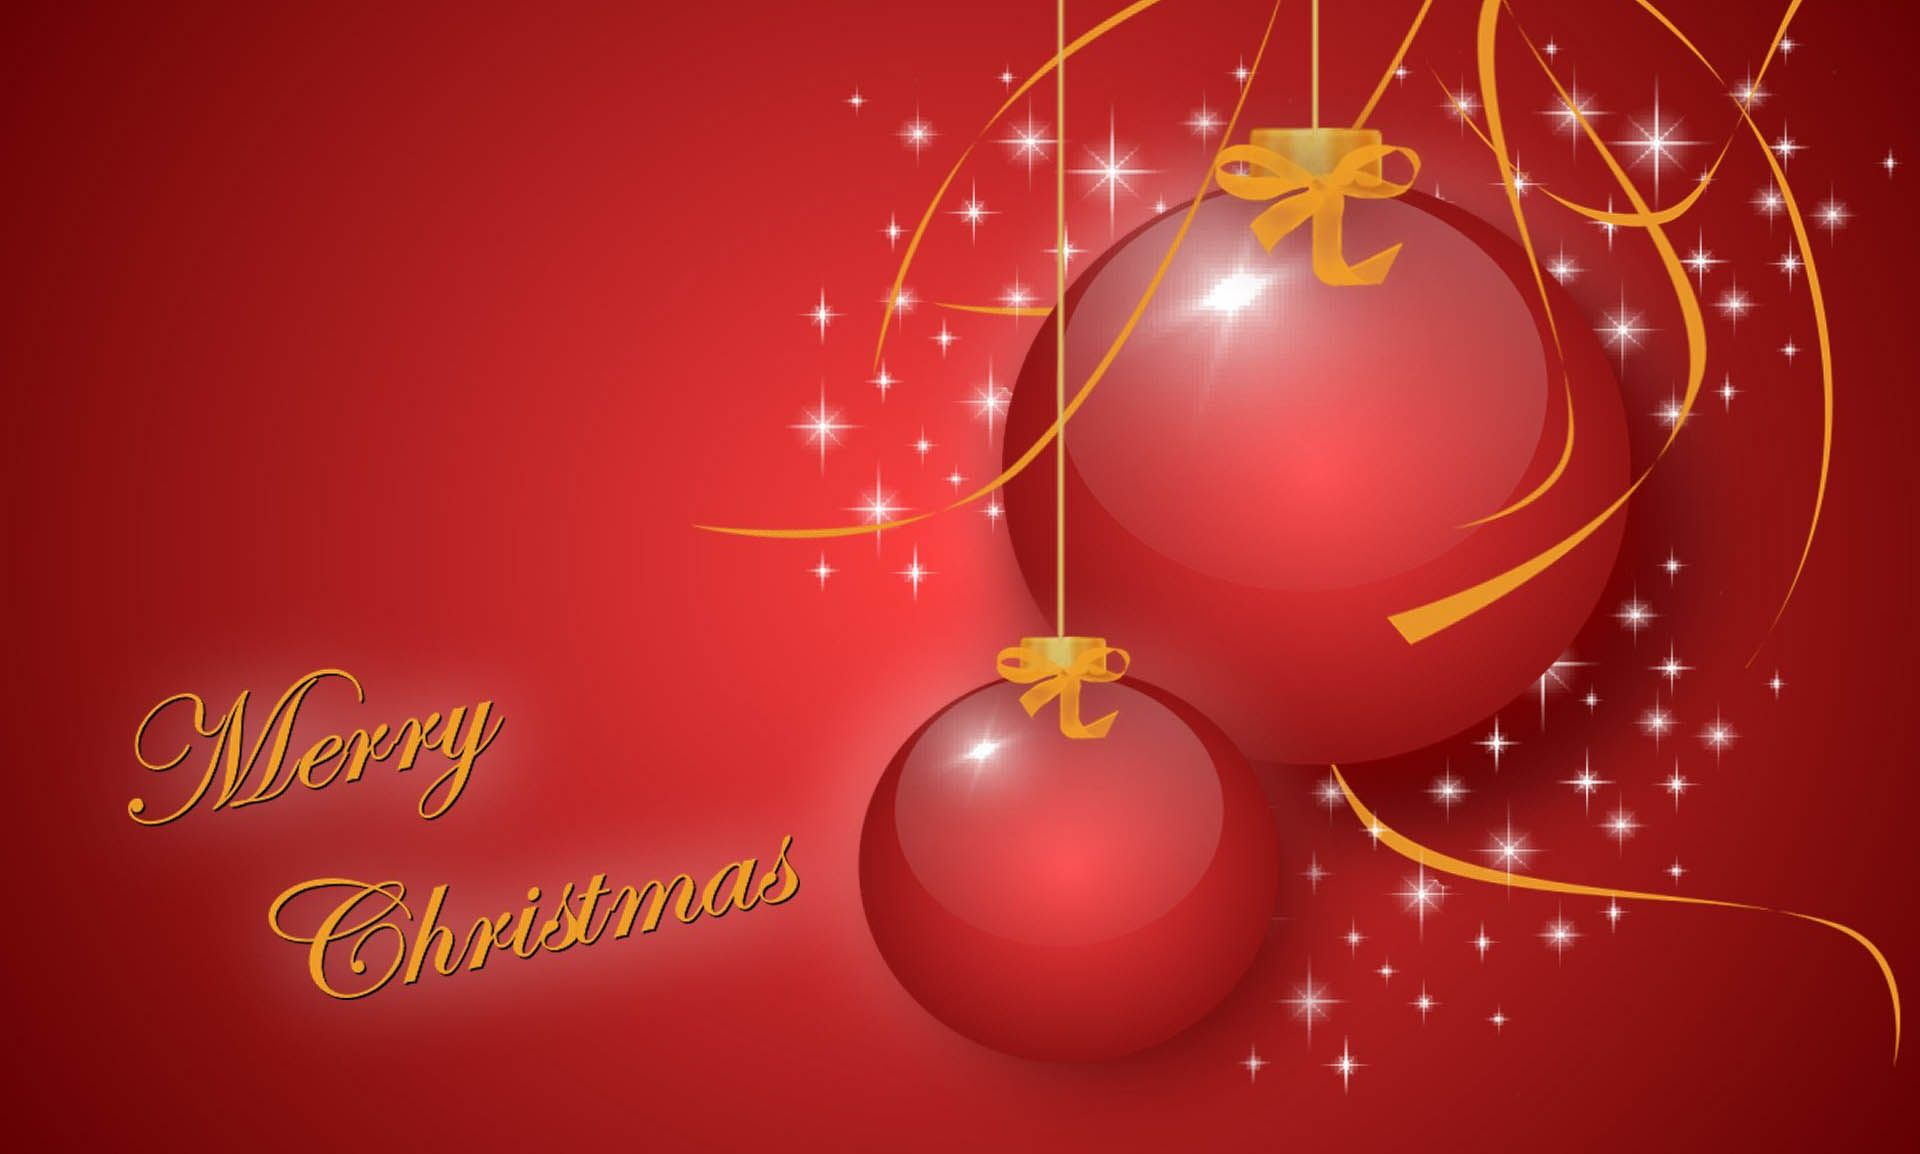 Merry Christmas High Resolution Wallpaper Christmas Pictures